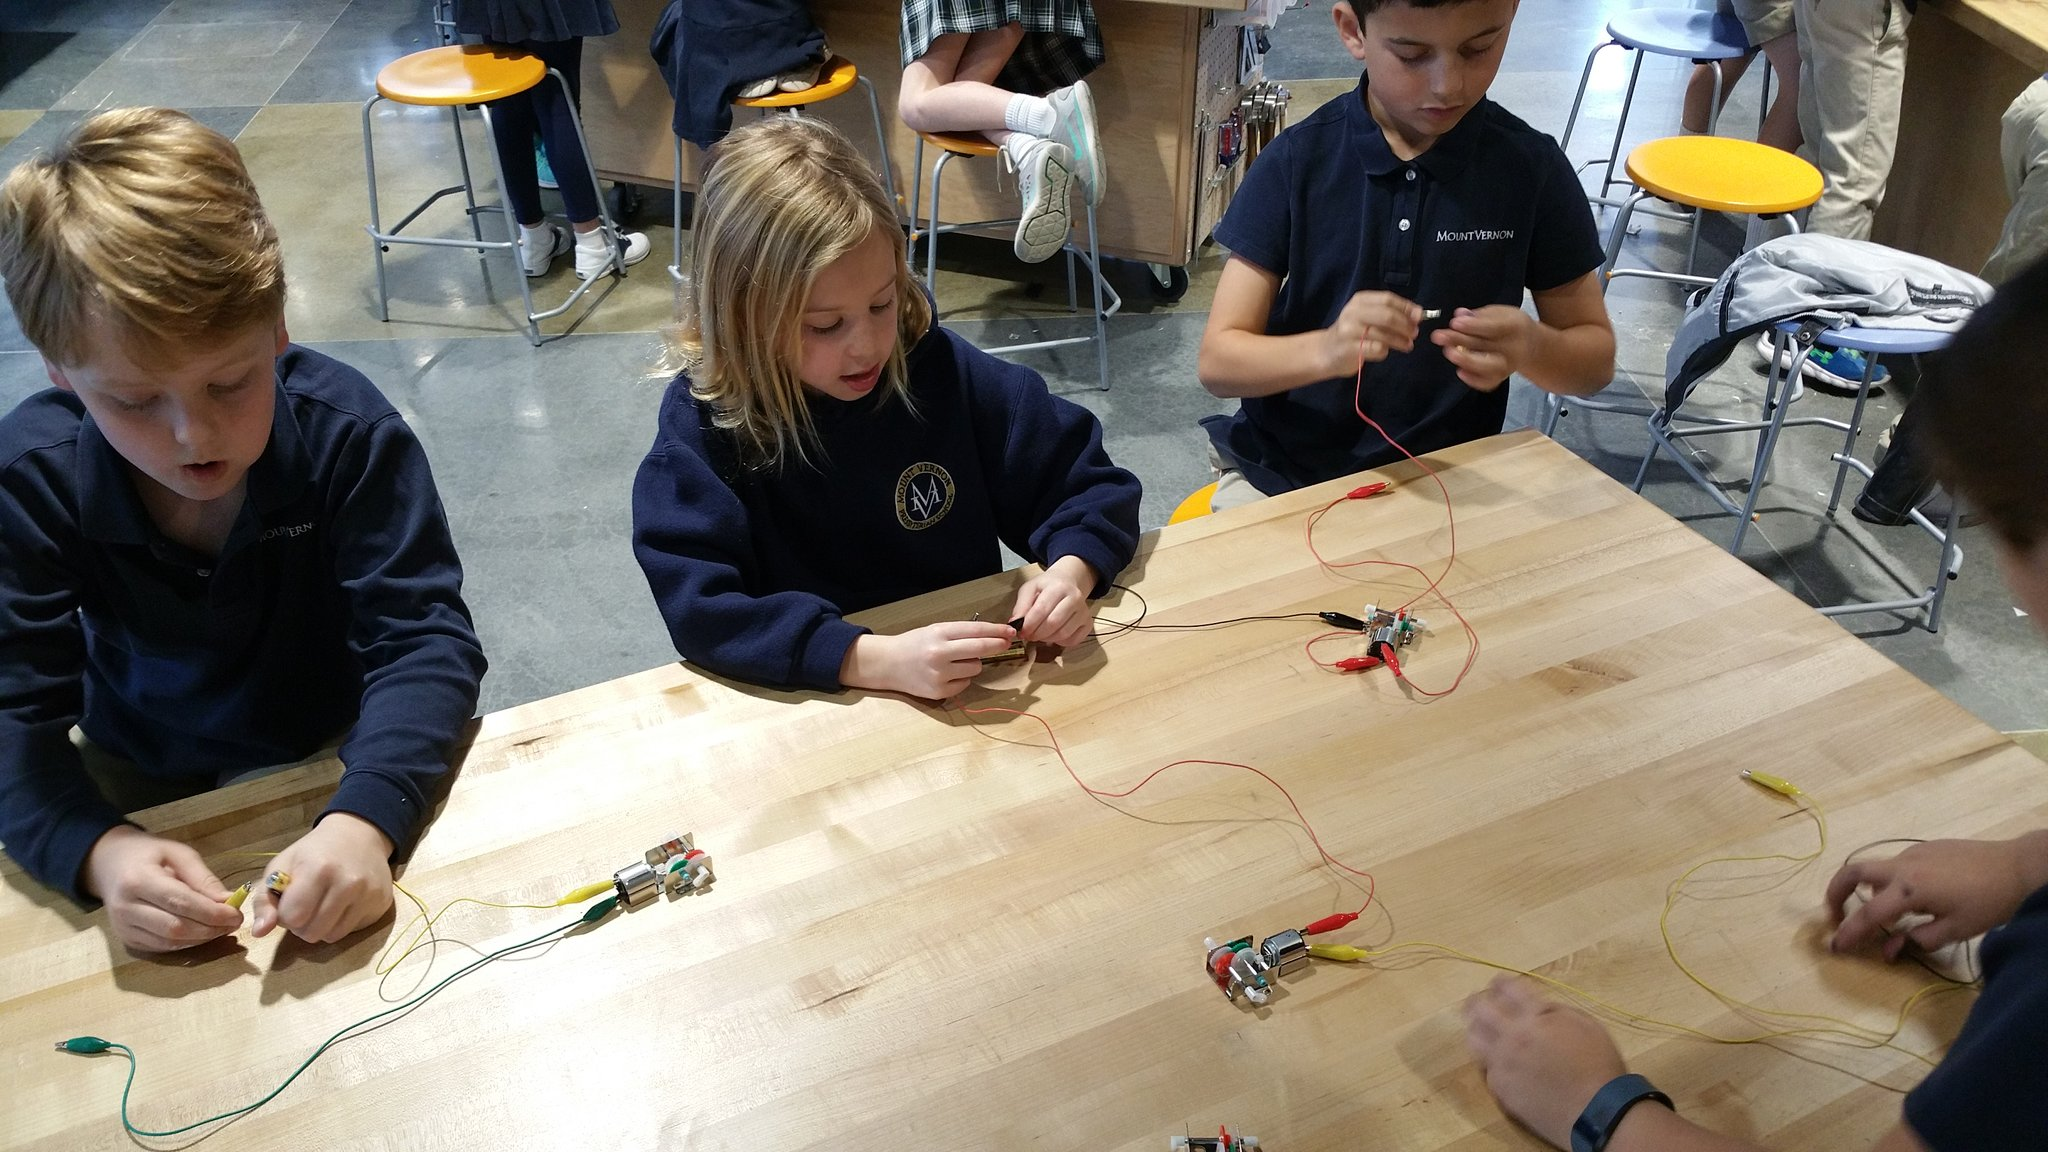 S1: It stopped working! S2: Let's tinker with it then to find out why. #kidquote #MakerEd explorations with gearboxes & motors. #MVPSchool https://t.co/6df1BbFoAf